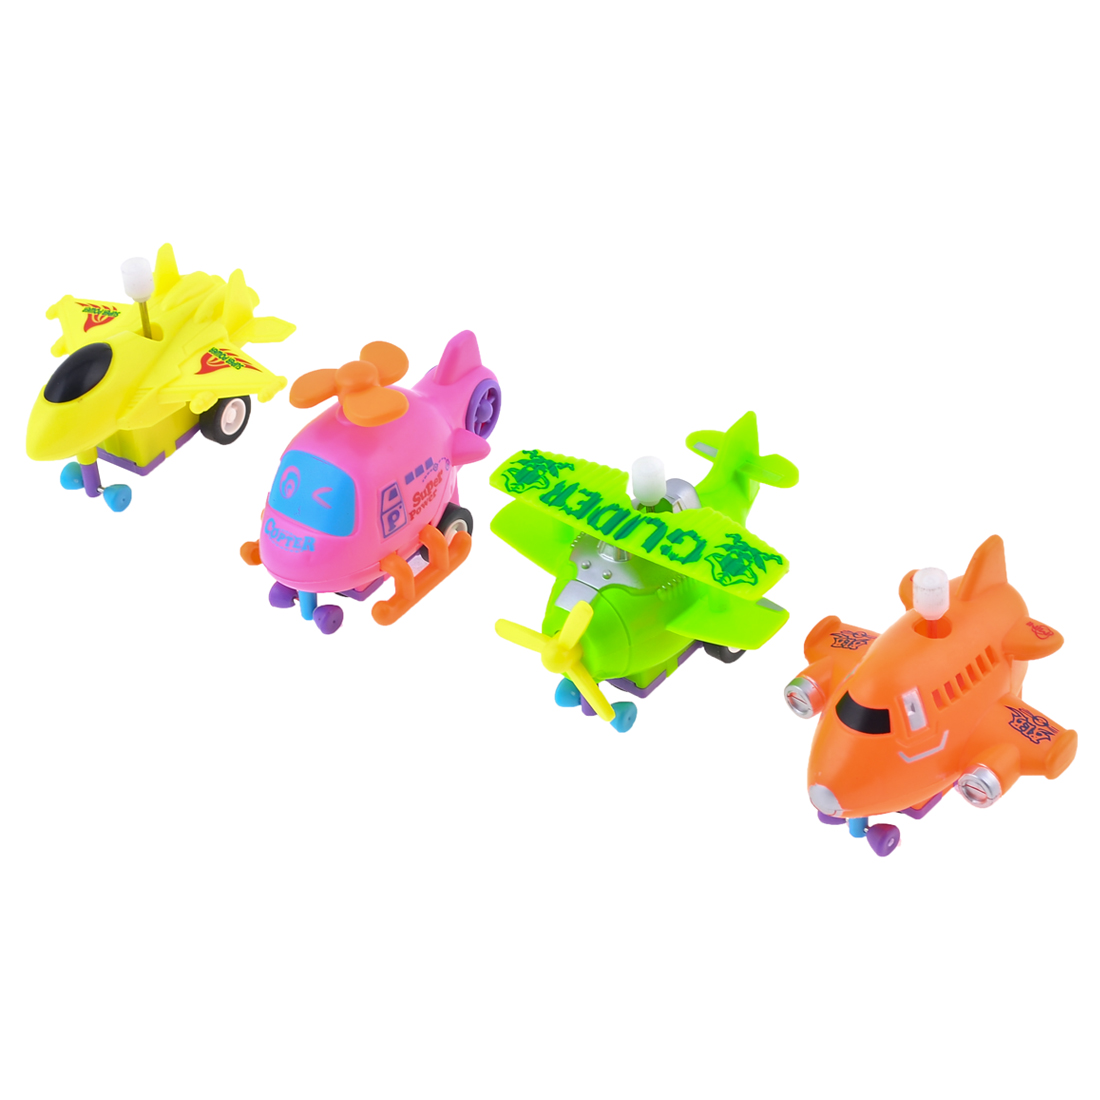 4 Pcs Children Colorful Plastic Clockwork Spring Helicopter Airplane Toy